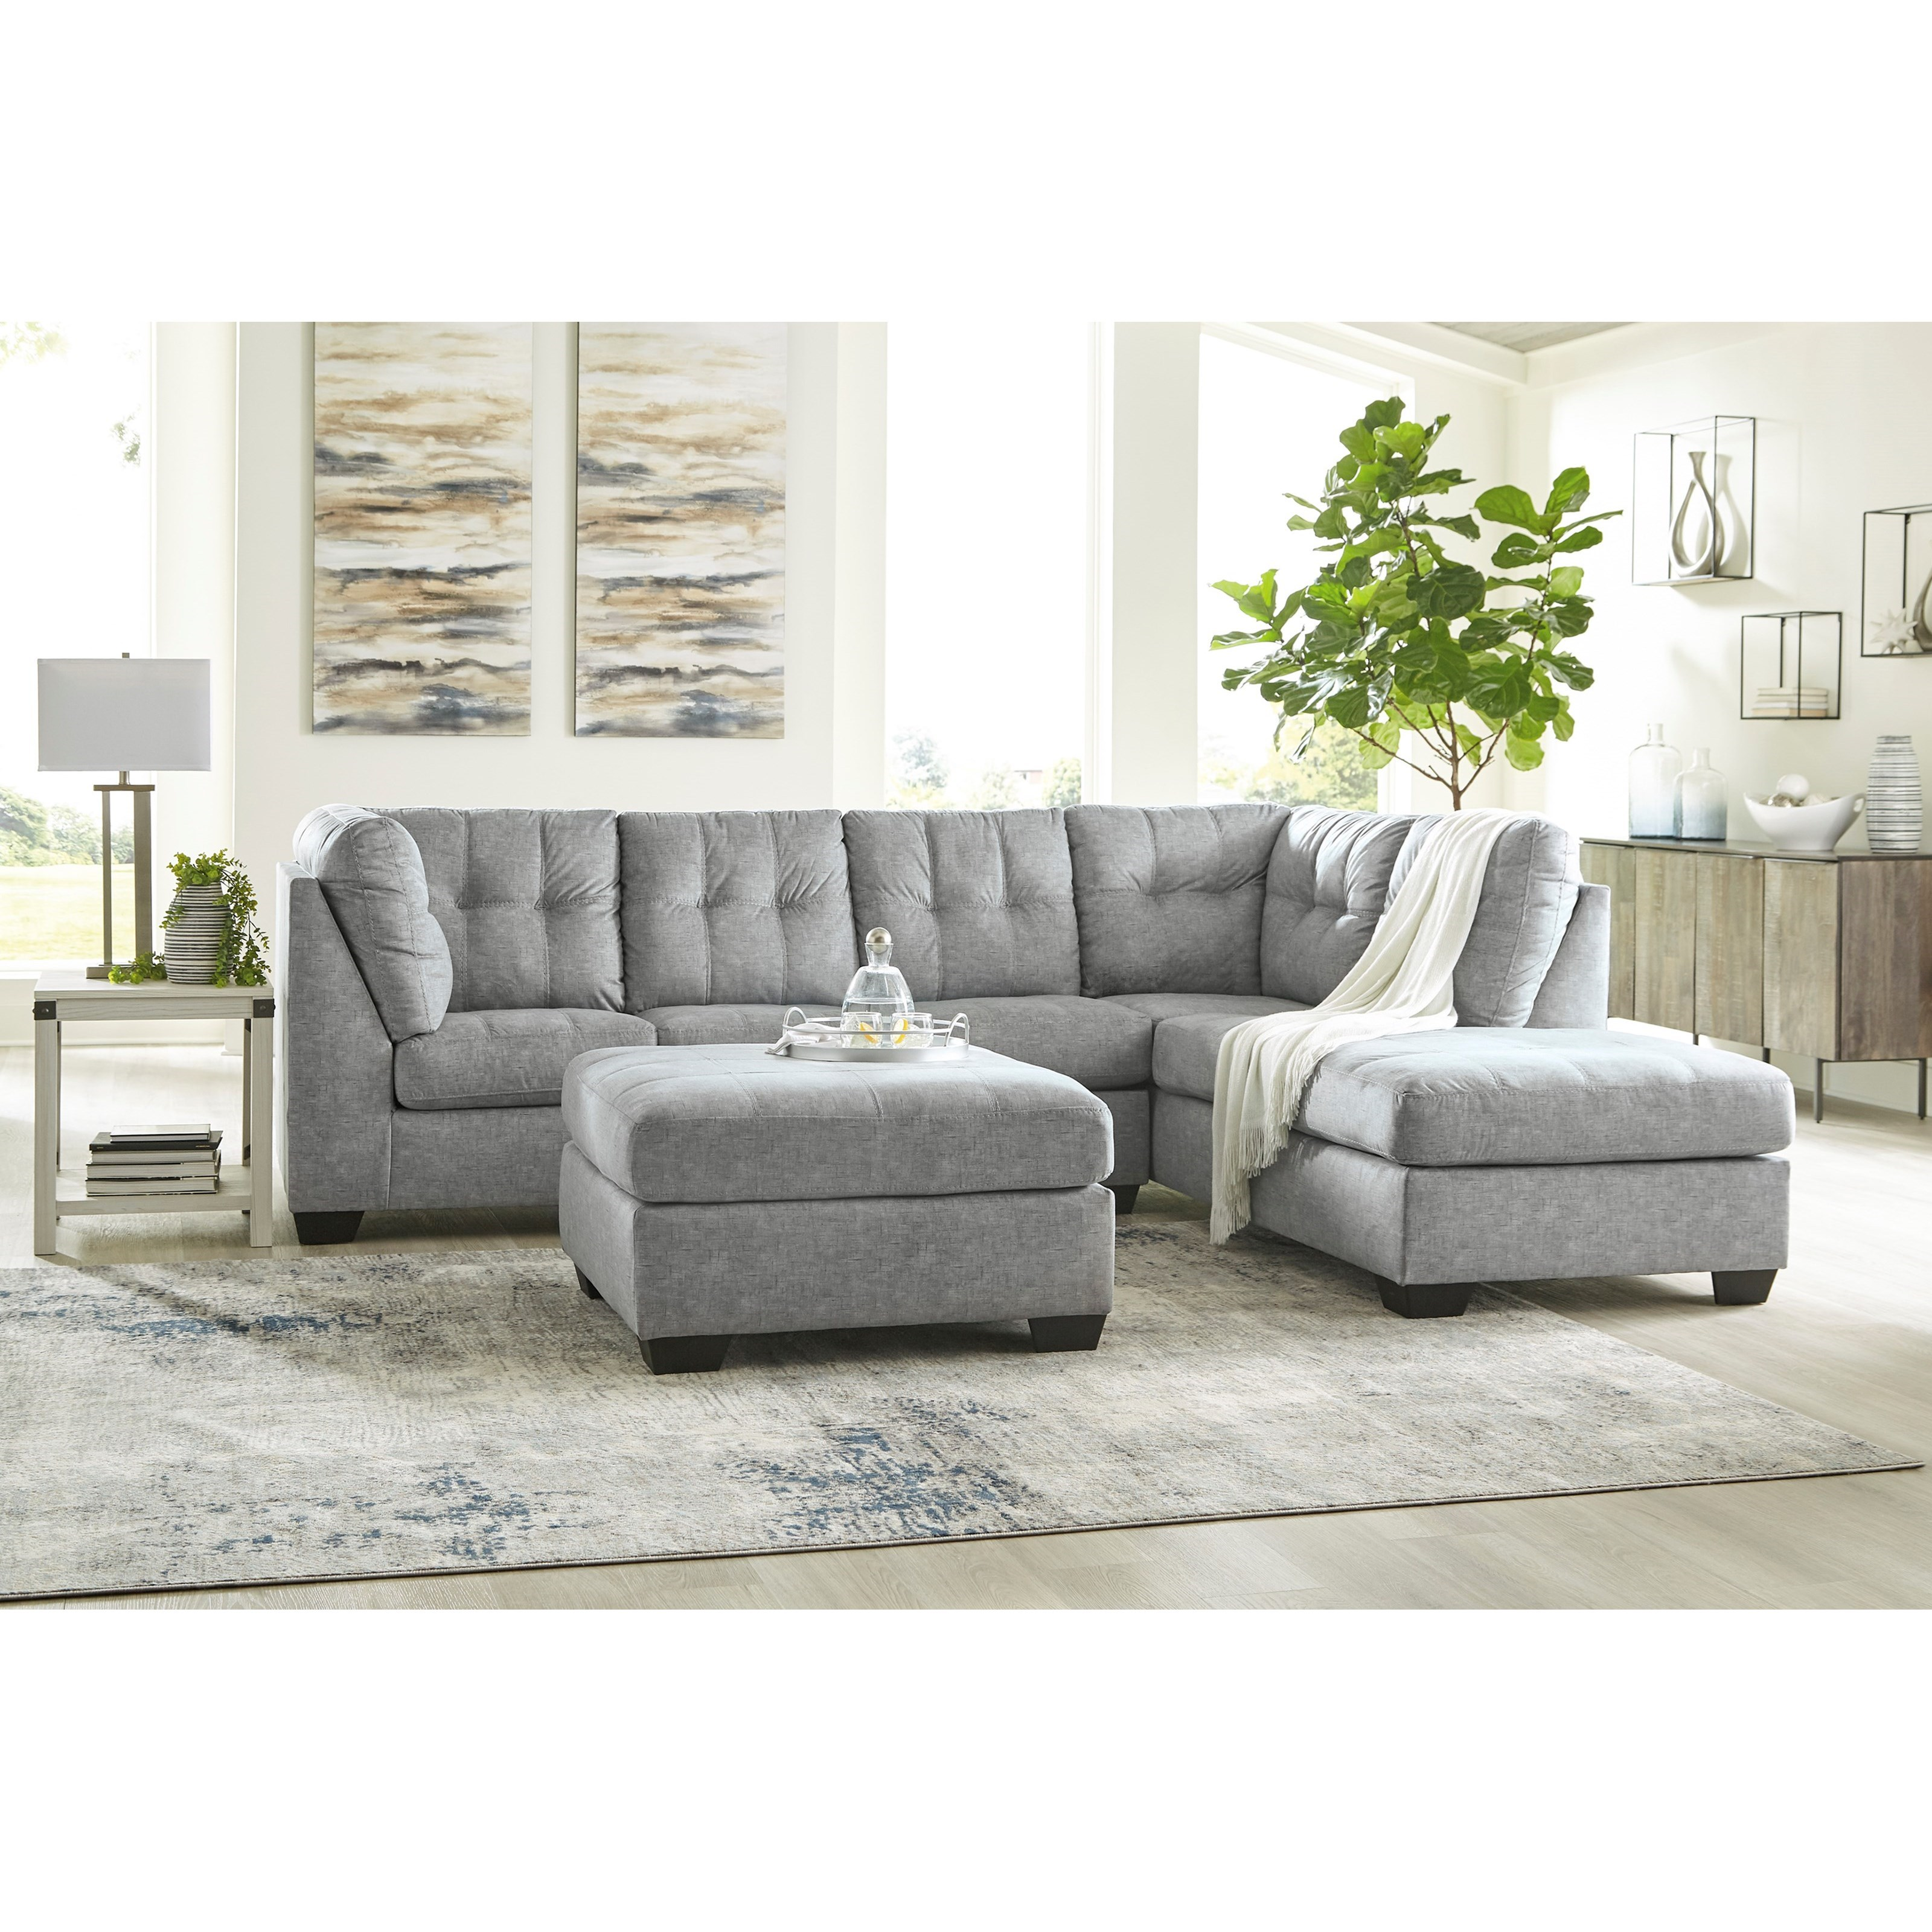 Falkirk Living Room Group by Benchcraft at Zak's Warehouse Clearance Center